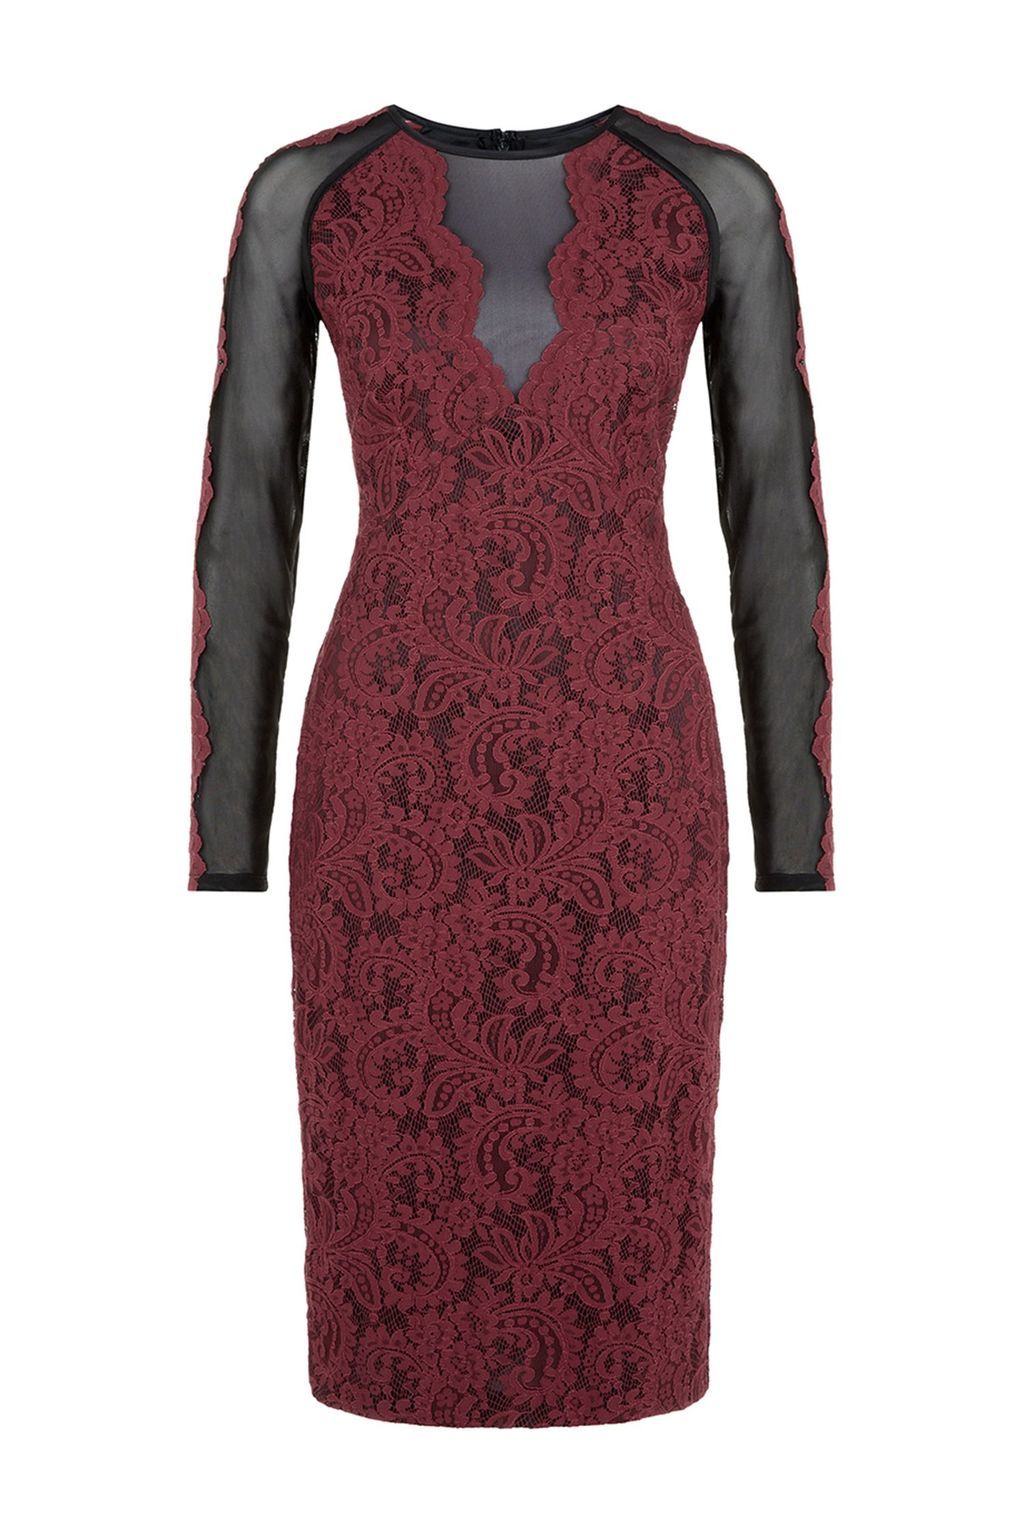 Jodie Dress, Purple - style: shift; neckline: round neck; fit: tight; secondary colour: black; occasions: evening, occasion; length: on the knee; sleeve length: long sleeve; sleeve style: standard; texture group: lace; pattern type: fabric; pattern: colourblock; predominant colour: raspberry; season: a/w 2014; wardrobe: event